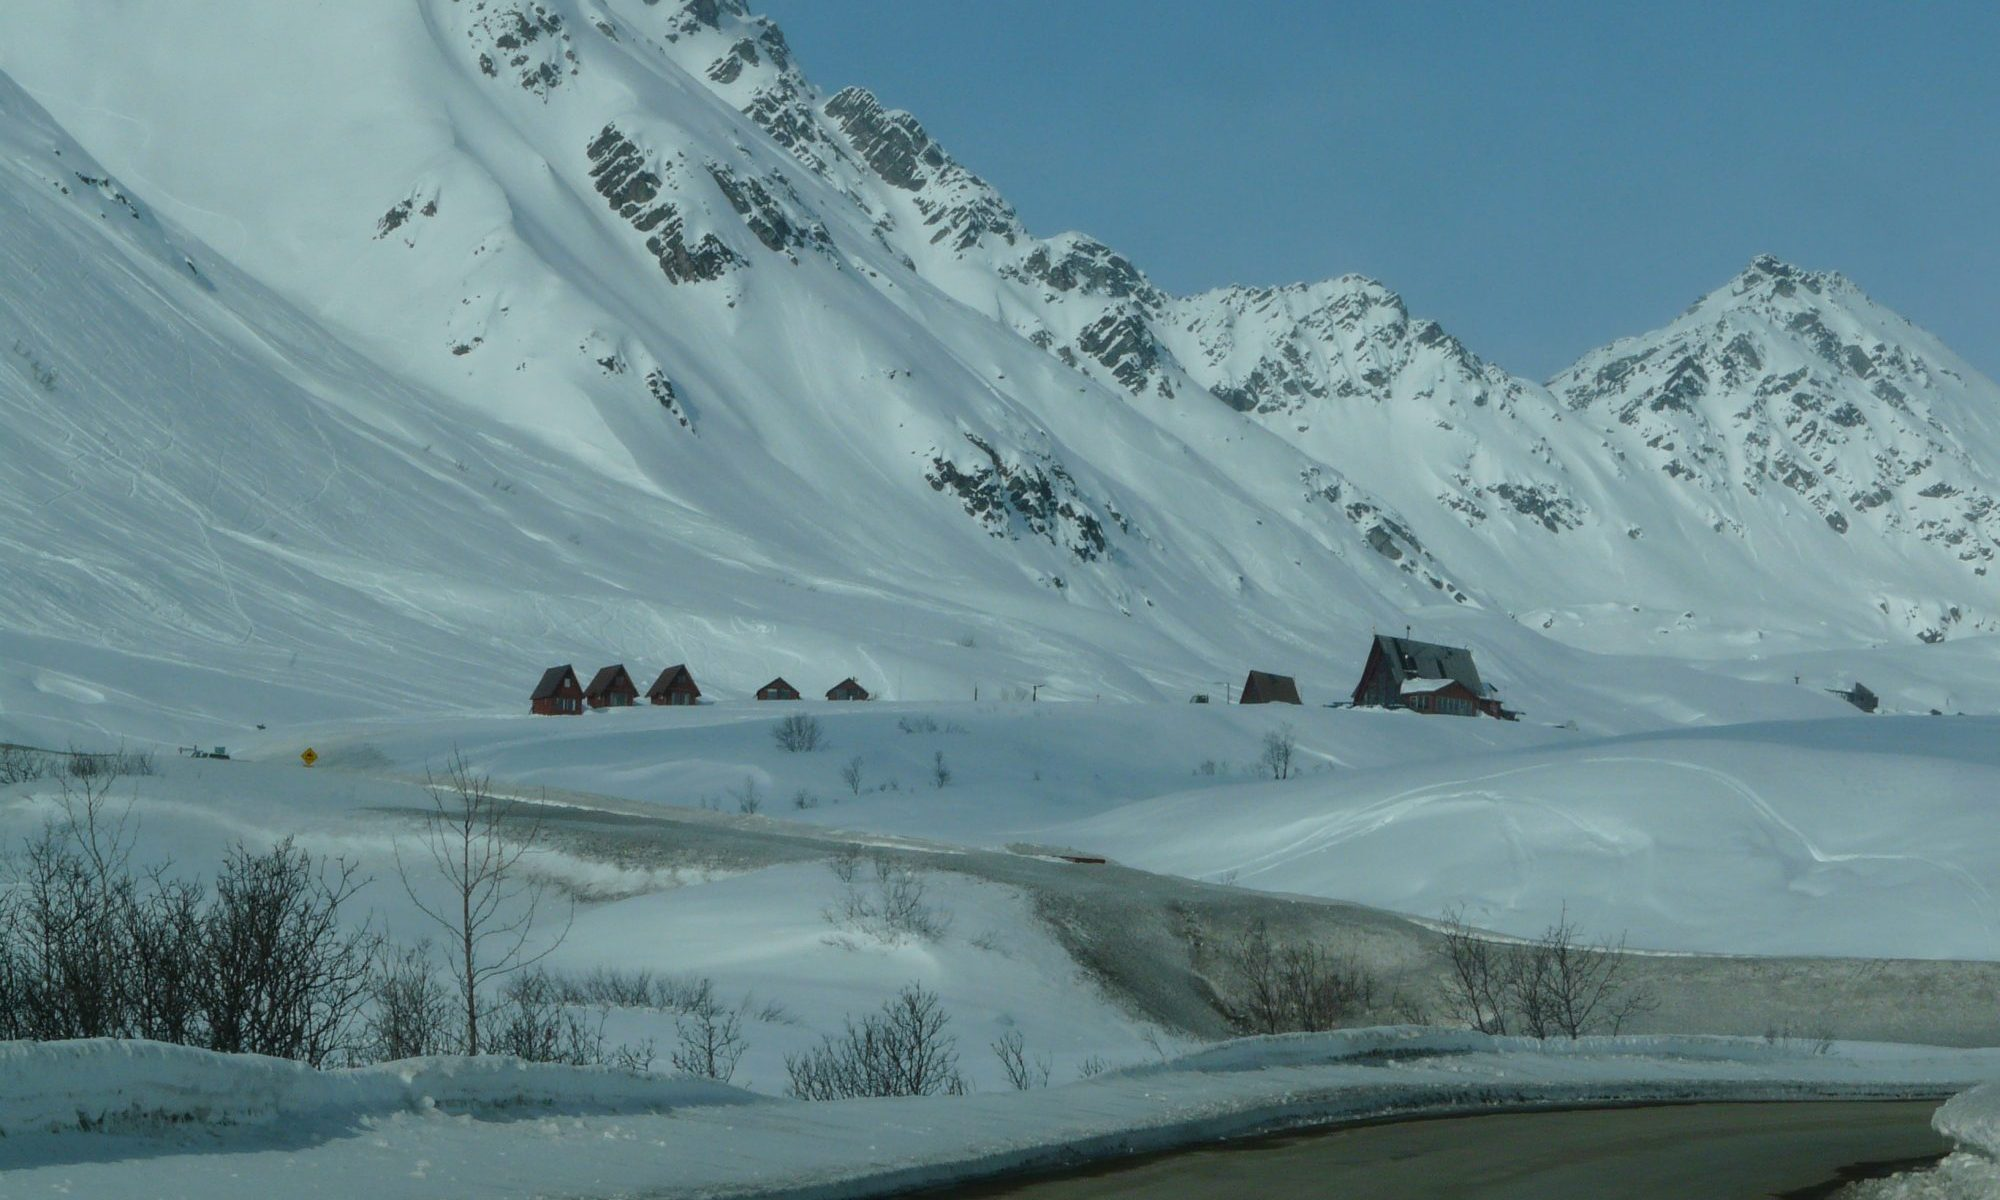 Hatcher Pass in Winter, where Skeetawk resort will be developed. Skeetawk ski area gets funding for first ski lift.